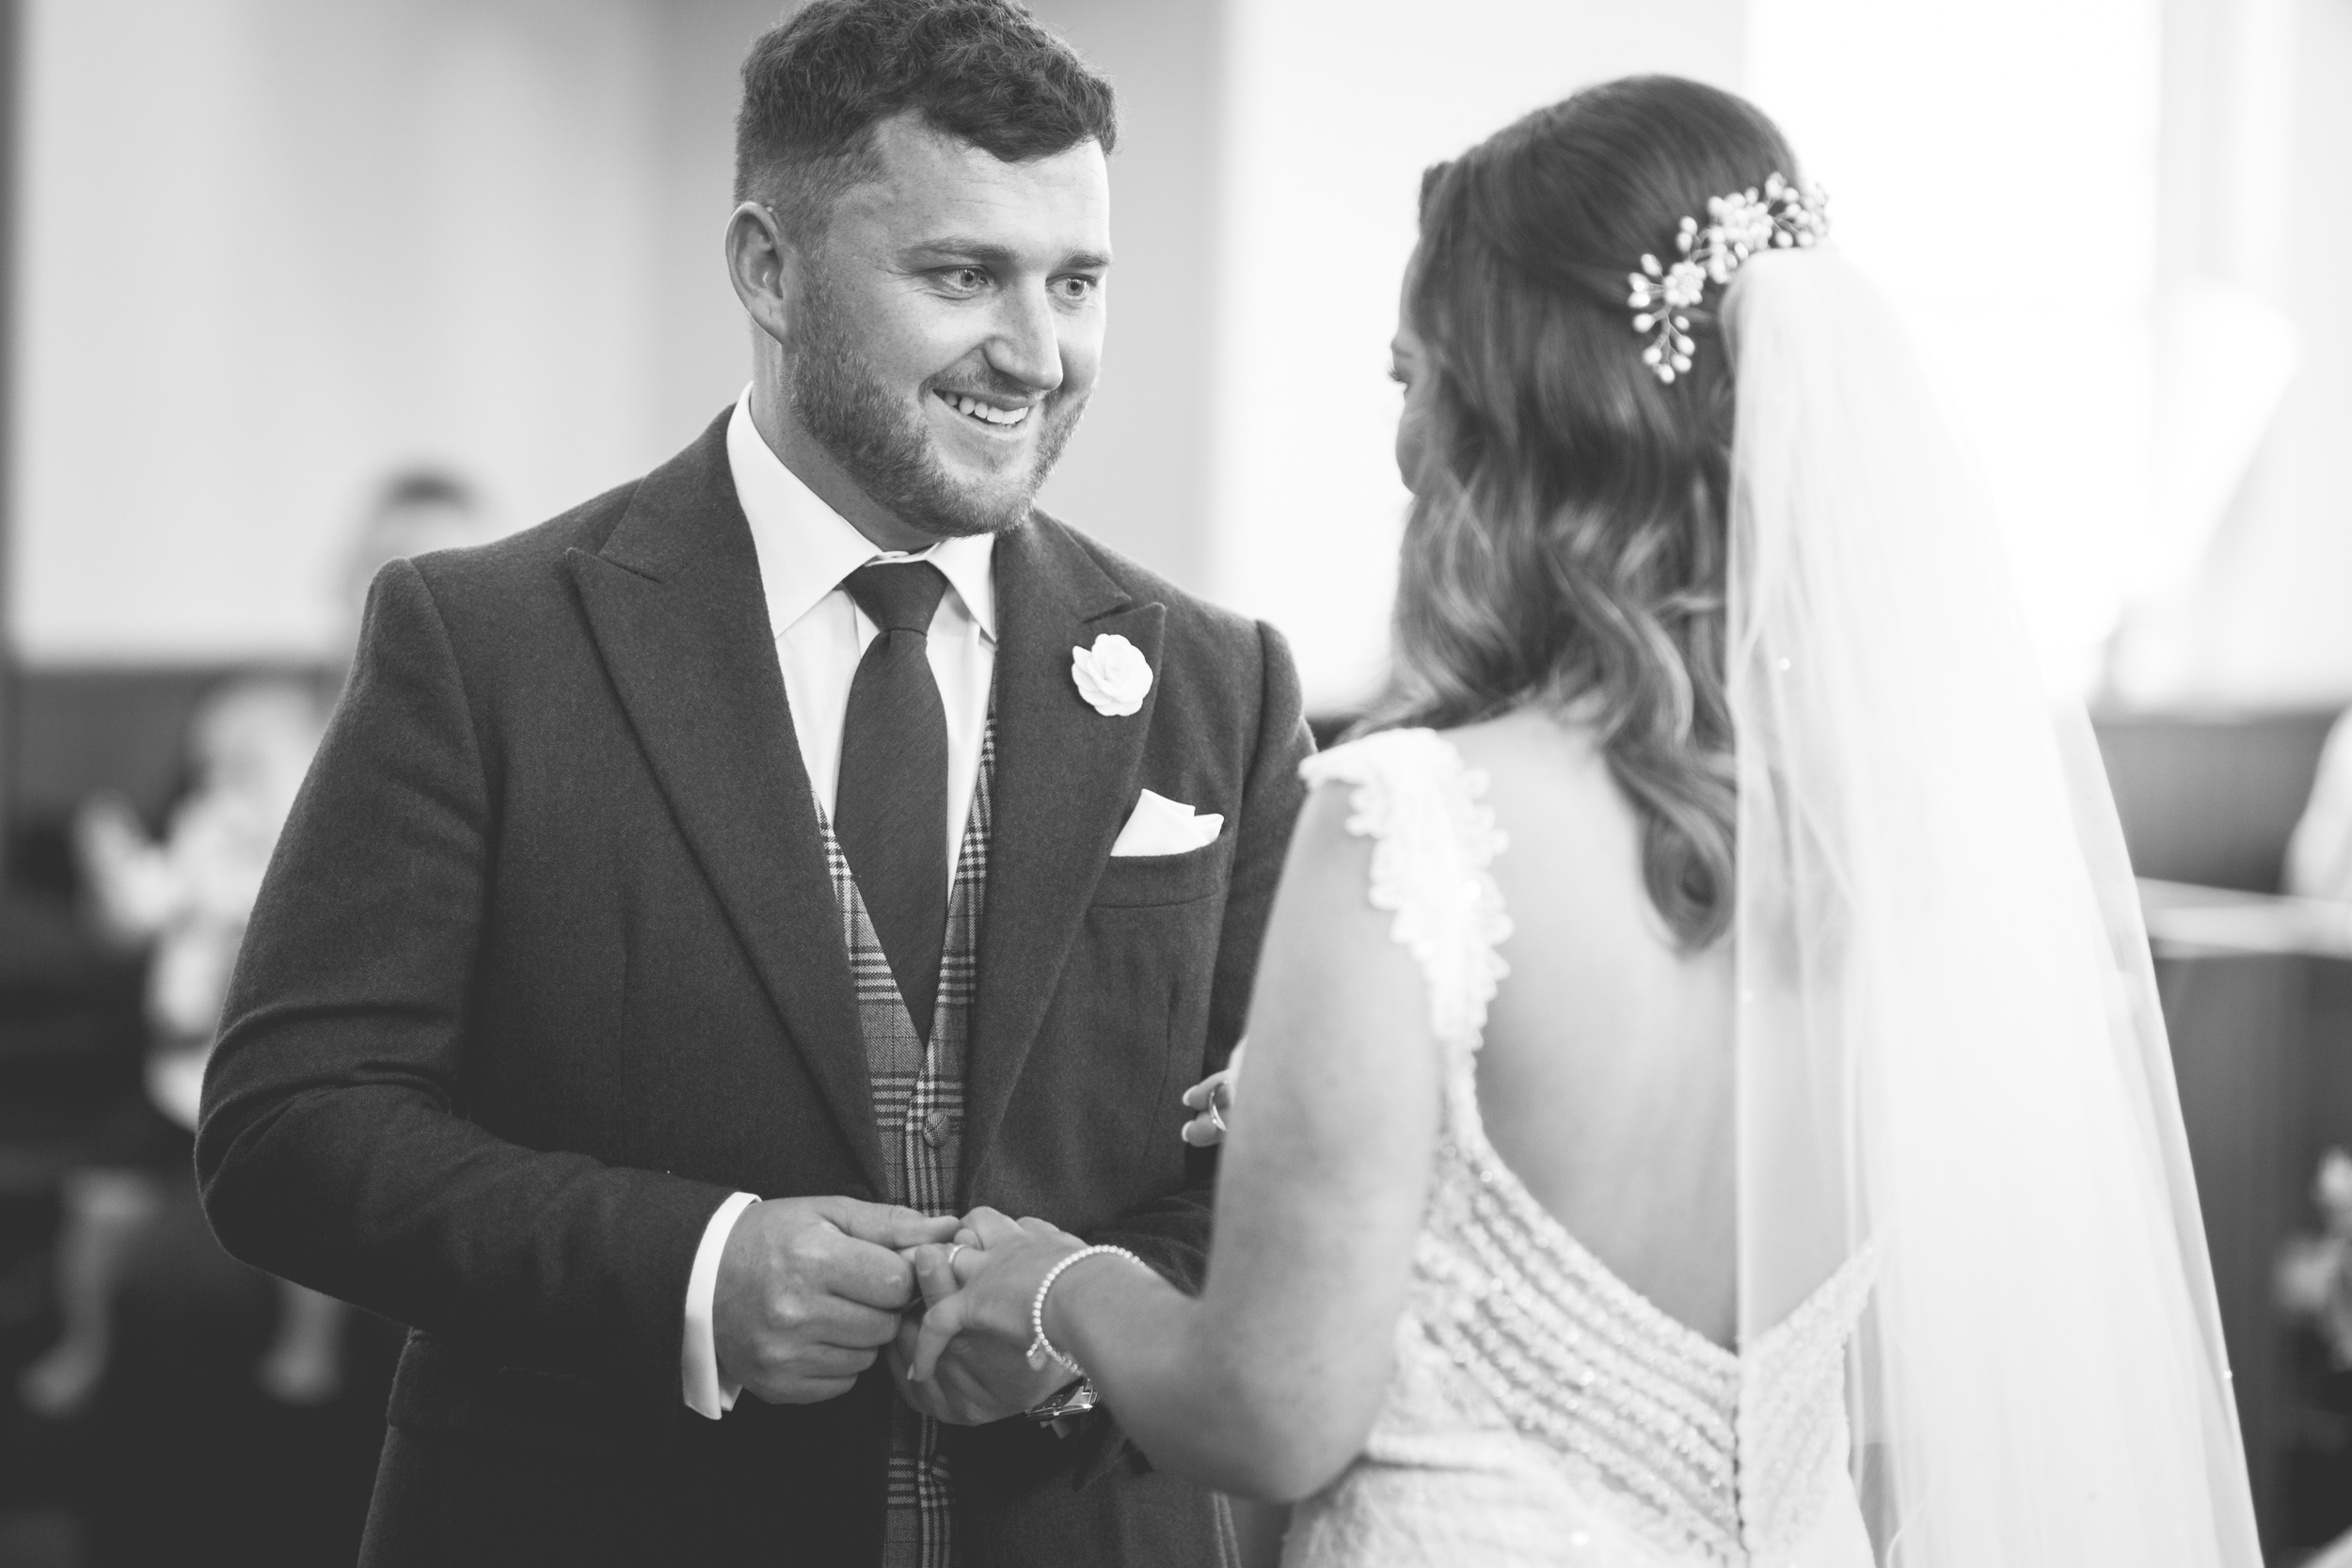 Brian McEwan | Northern Ireland Wedding Photographer | Rebecca & Michael | Ceremony-73.jpg